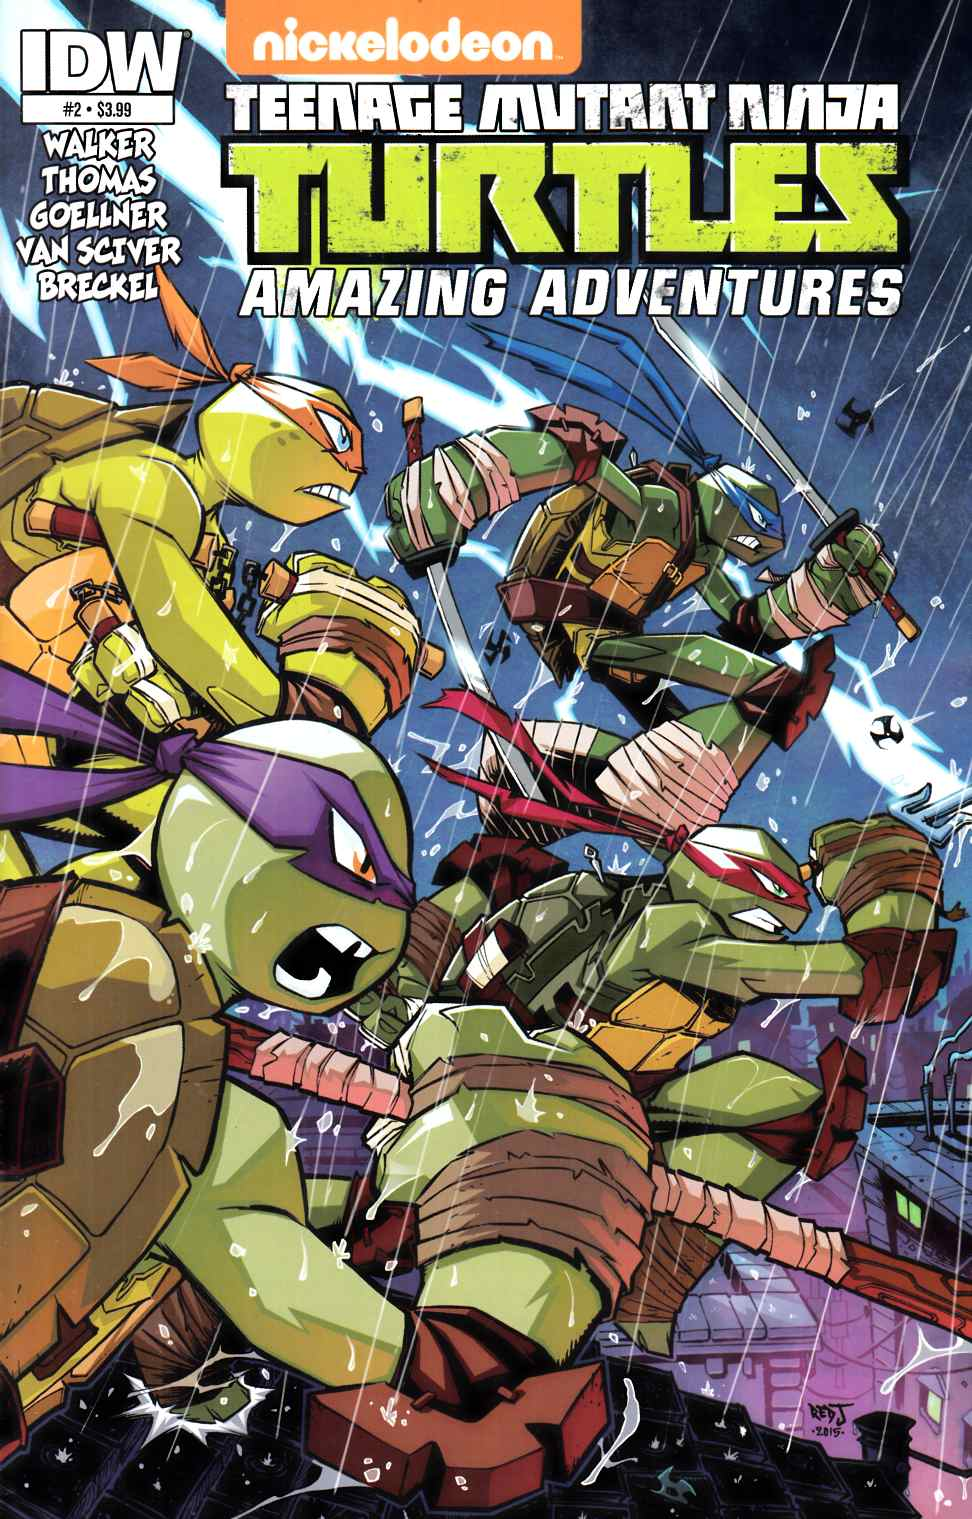 TMNT Amazing Adventures #2 [IDW Comic] THUMBNAIL